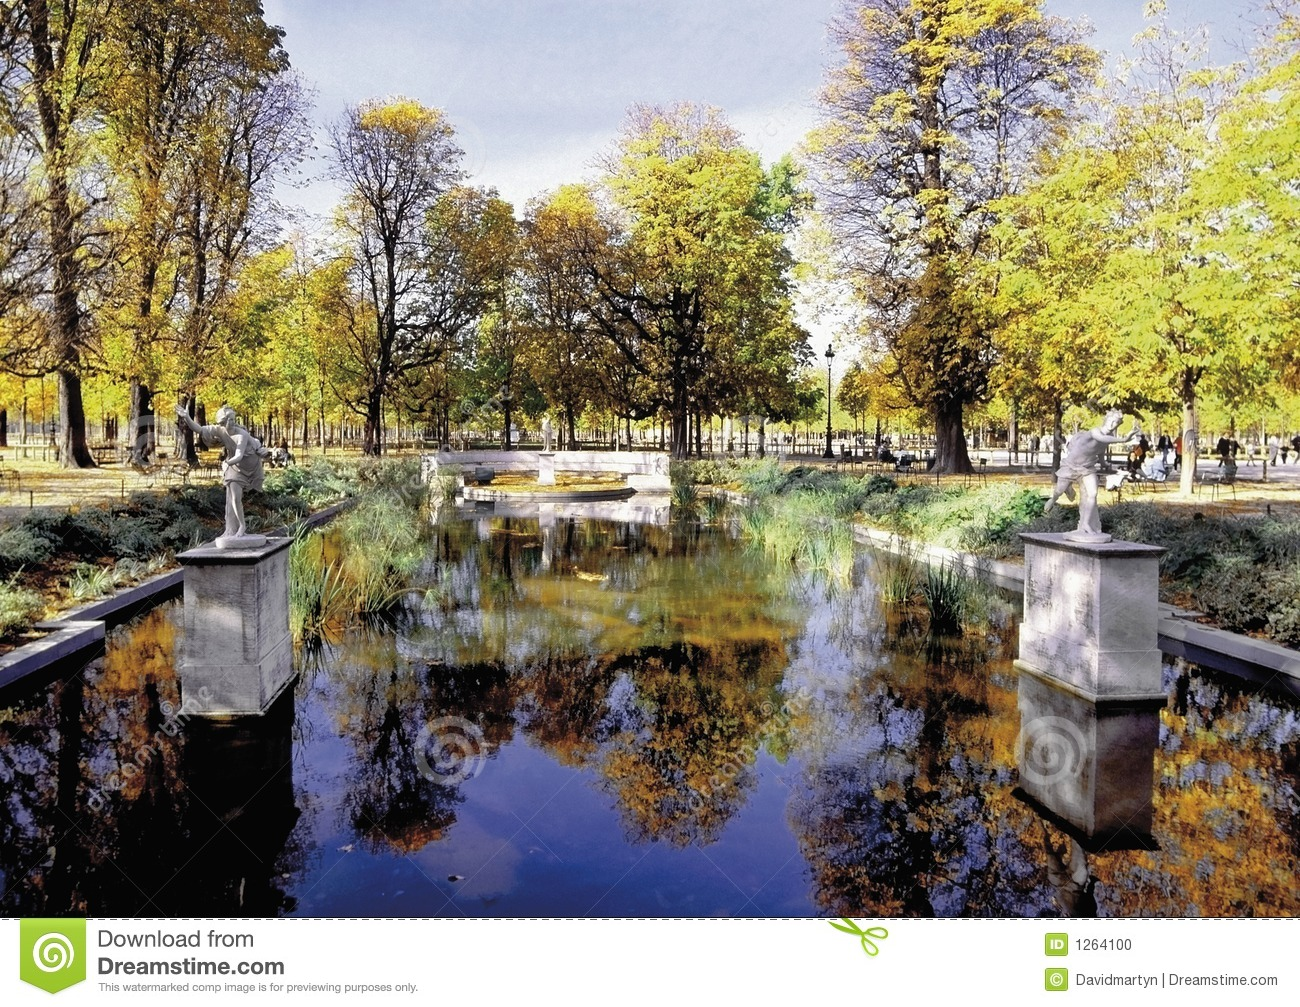 Jardin des tuileries paris france stock photo image 1264100 for Tuilerie jardin